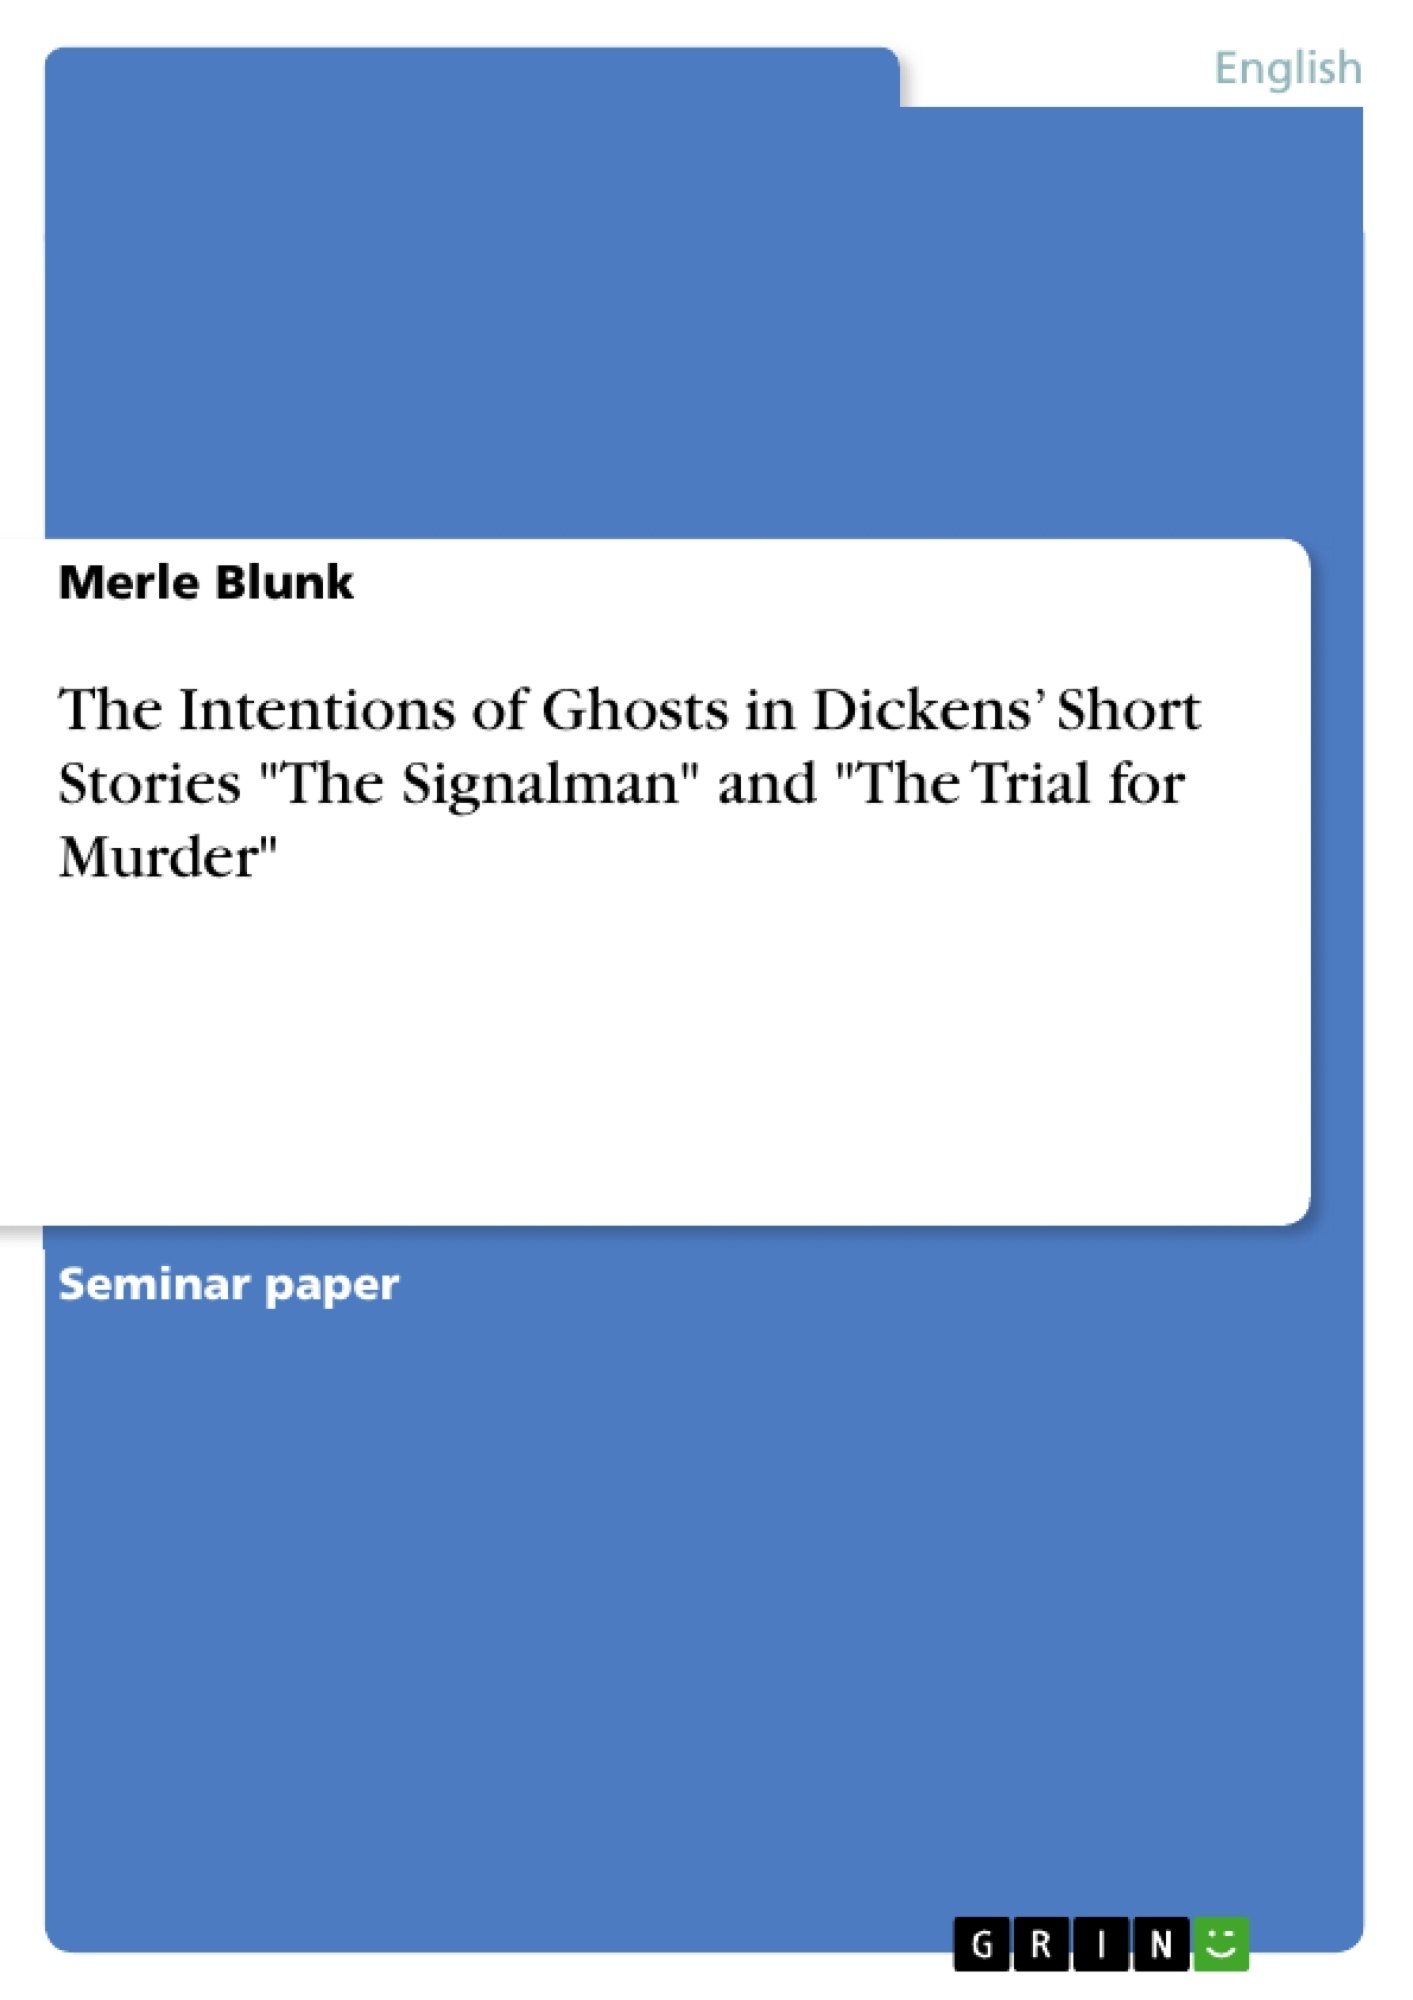 """Title: The Intentions of Ghosts in Dickens' Short Stories """"The Signalman"""" and """"The Trial for Murder"""""""